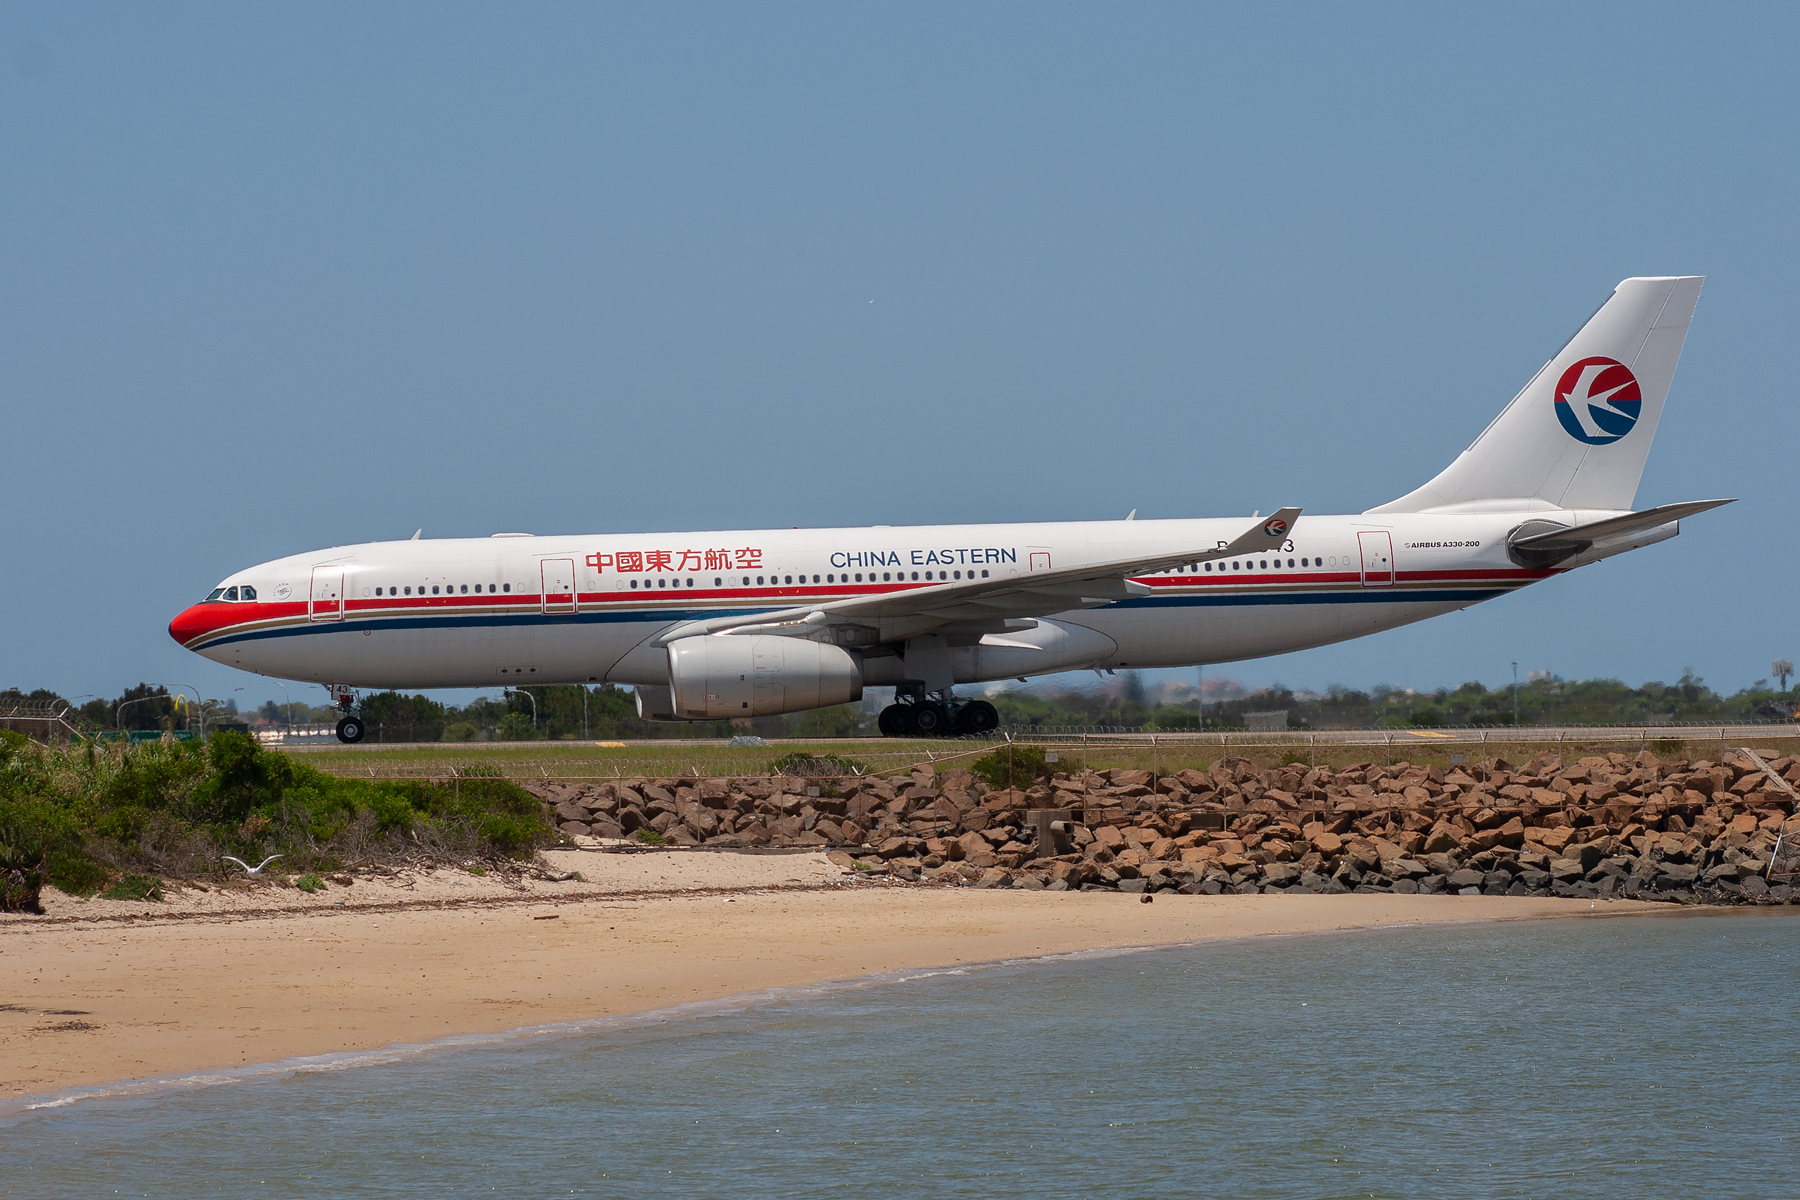 China Eastern Airlines Airbus A330-200 B-6543 at Kingsford Smith